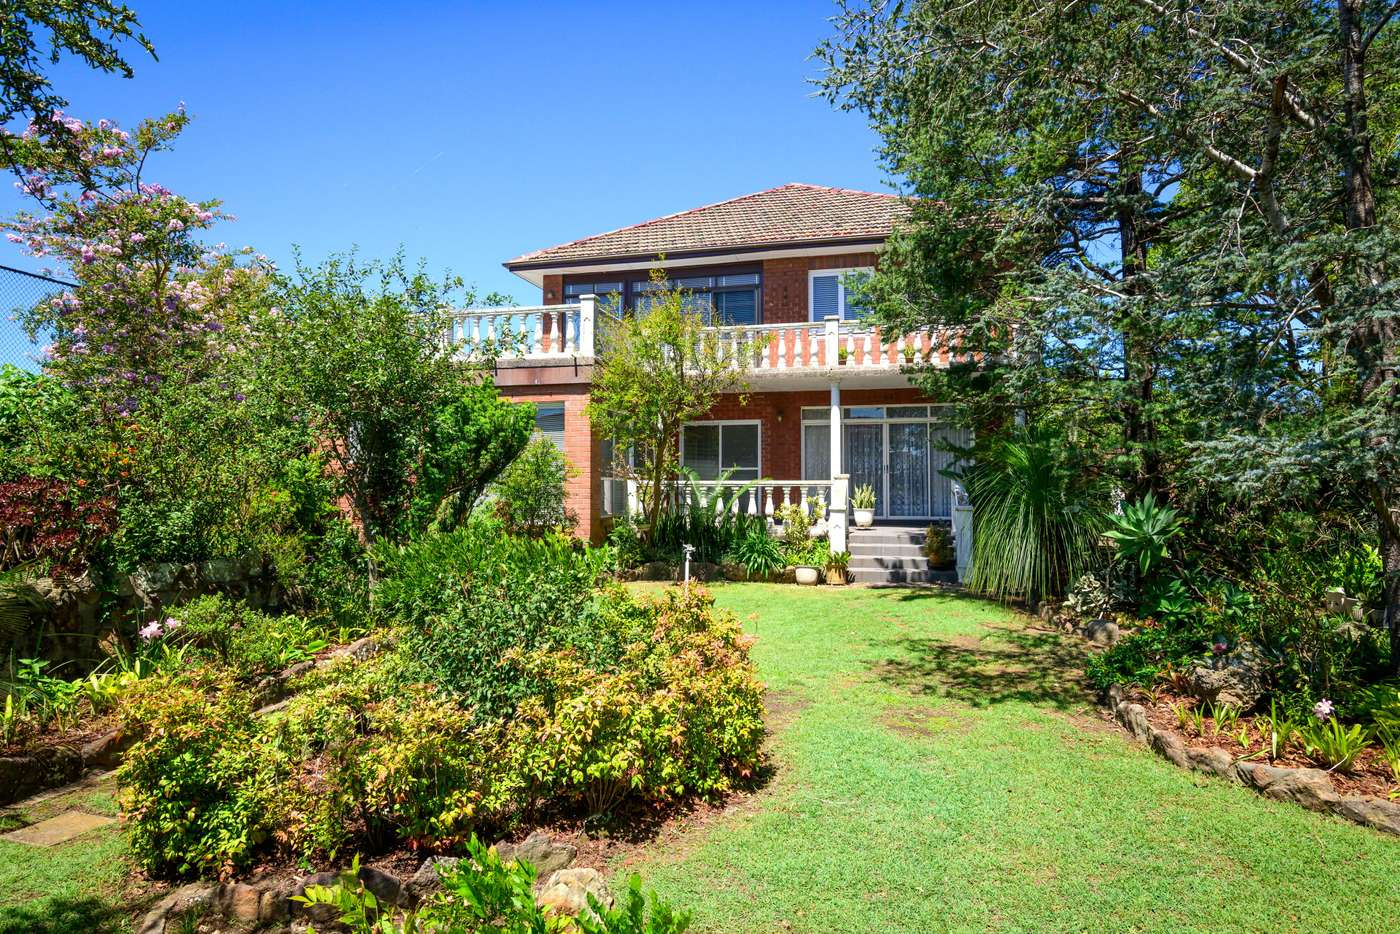 Main view of Homely house listing, 3 Pindari Avenue, Mosman NSW 2088